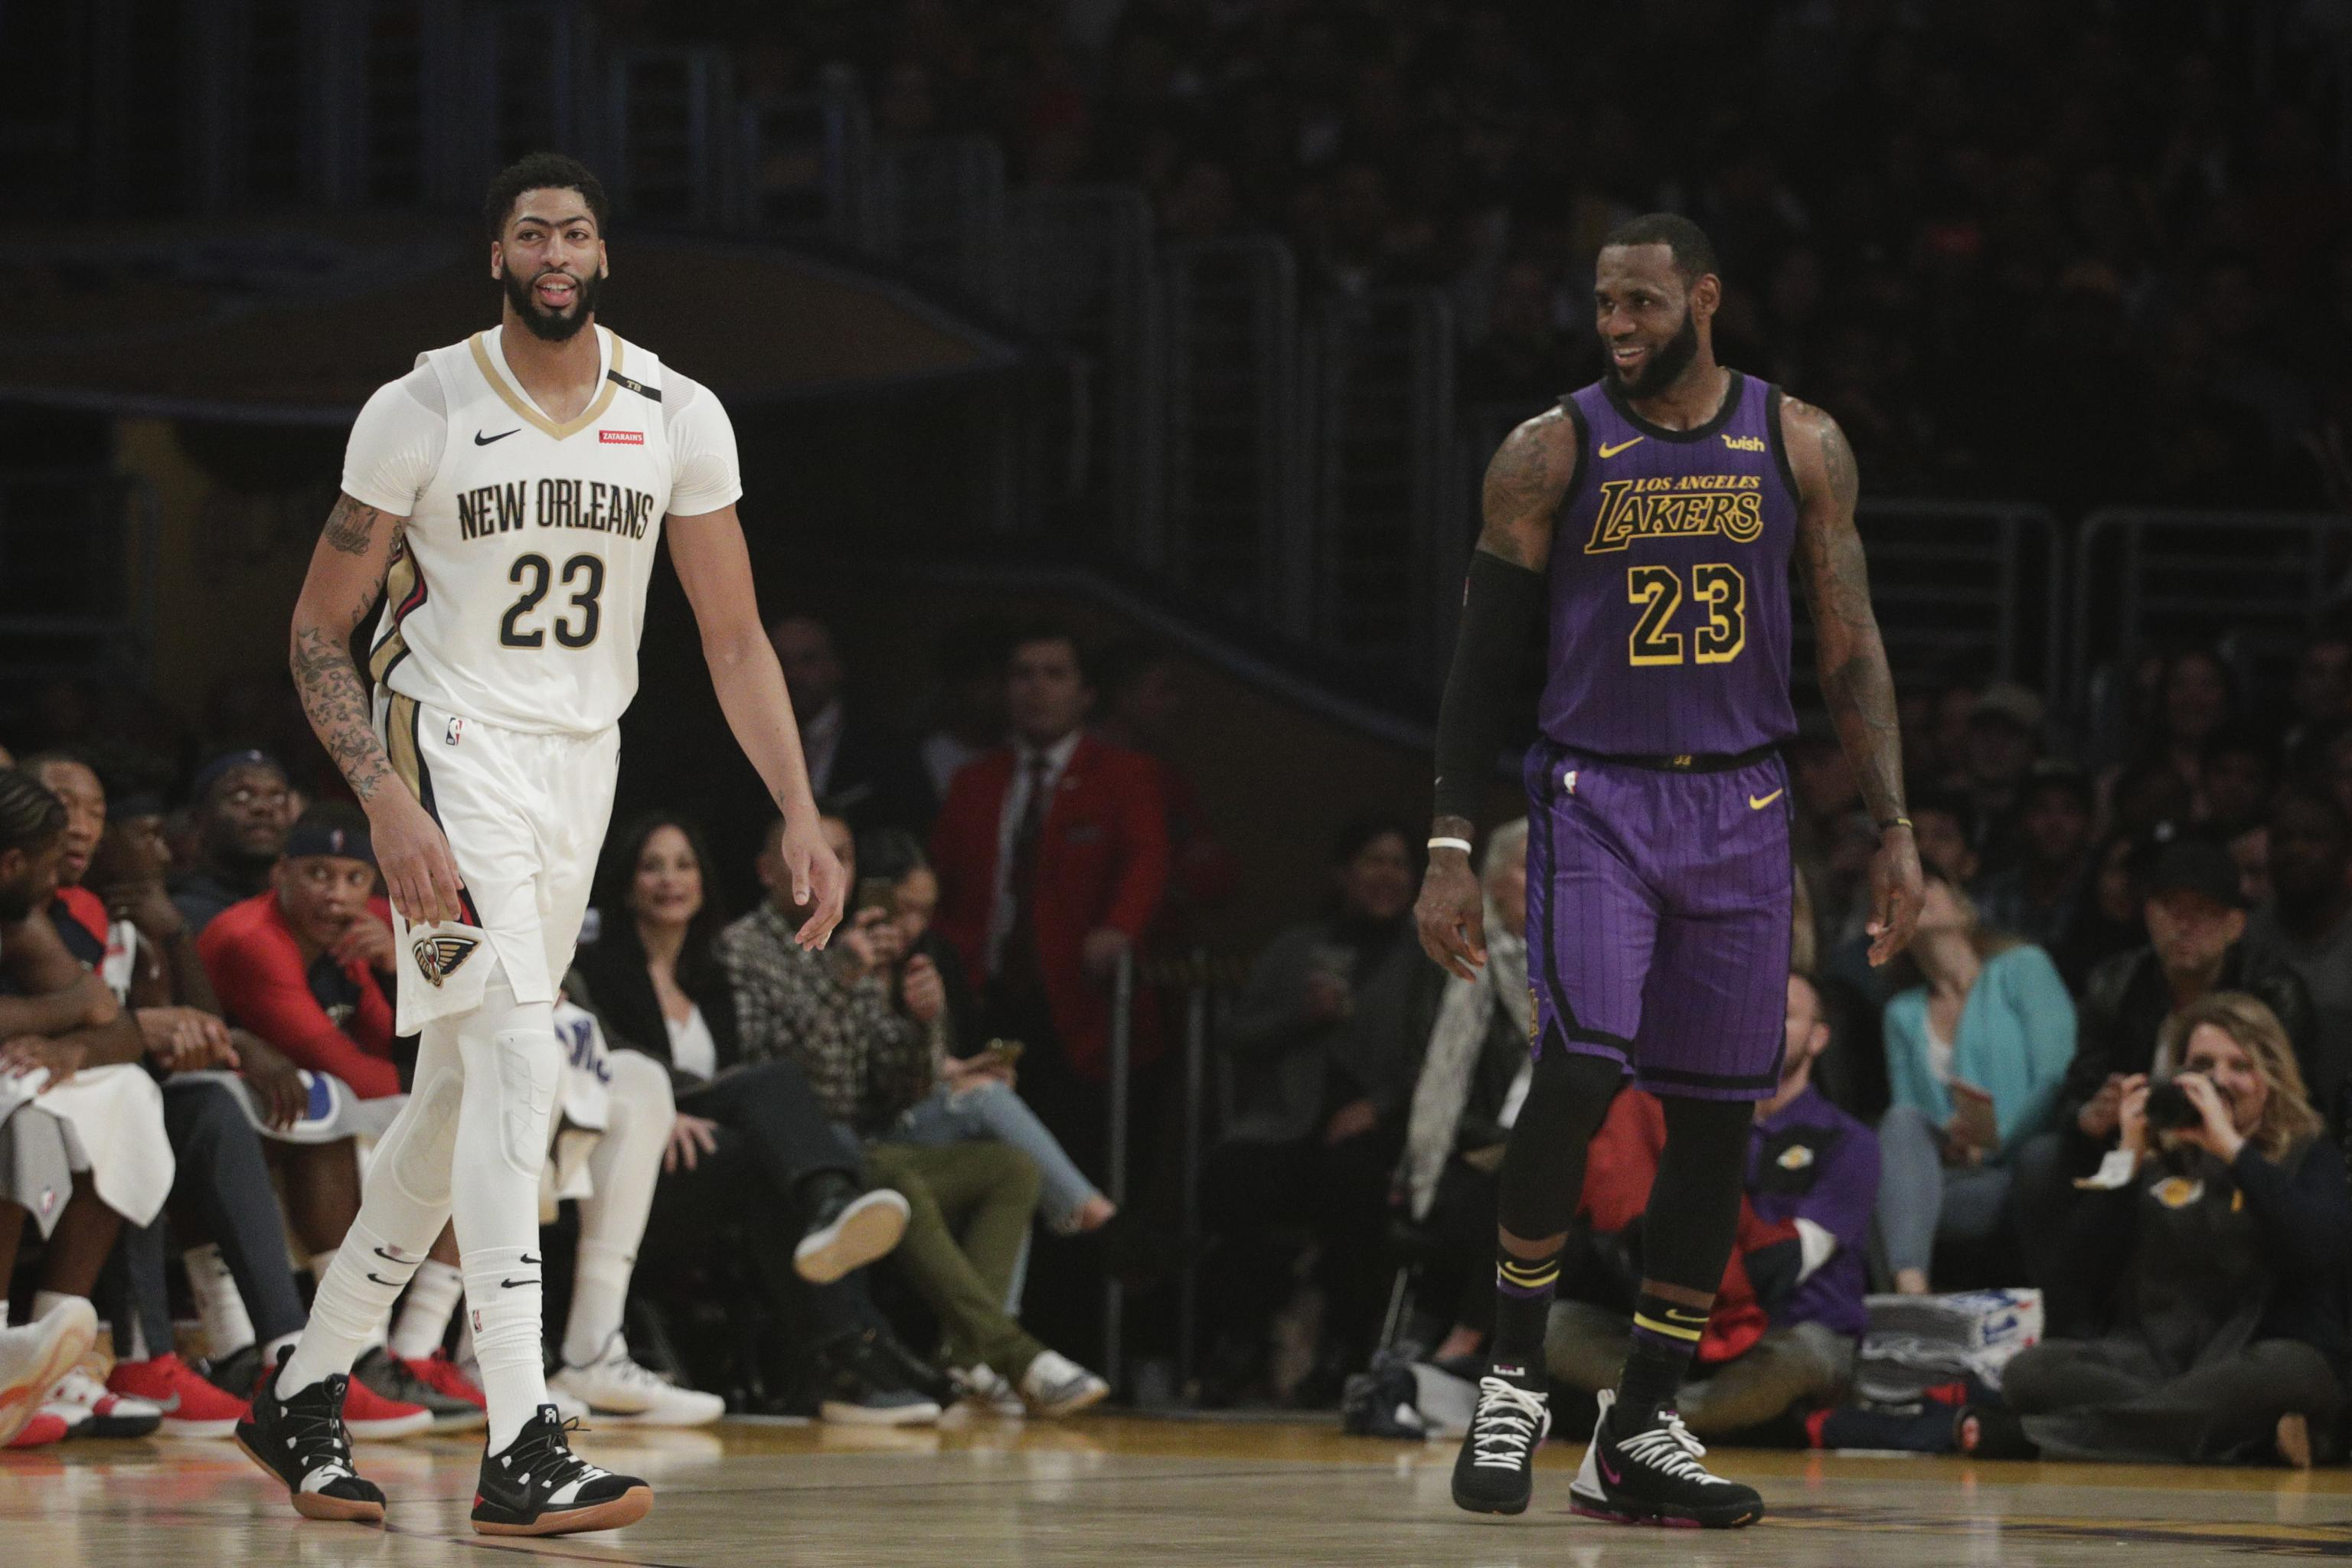 Lakers Roster Rumored Free Agent Targets With Max Salary Cap